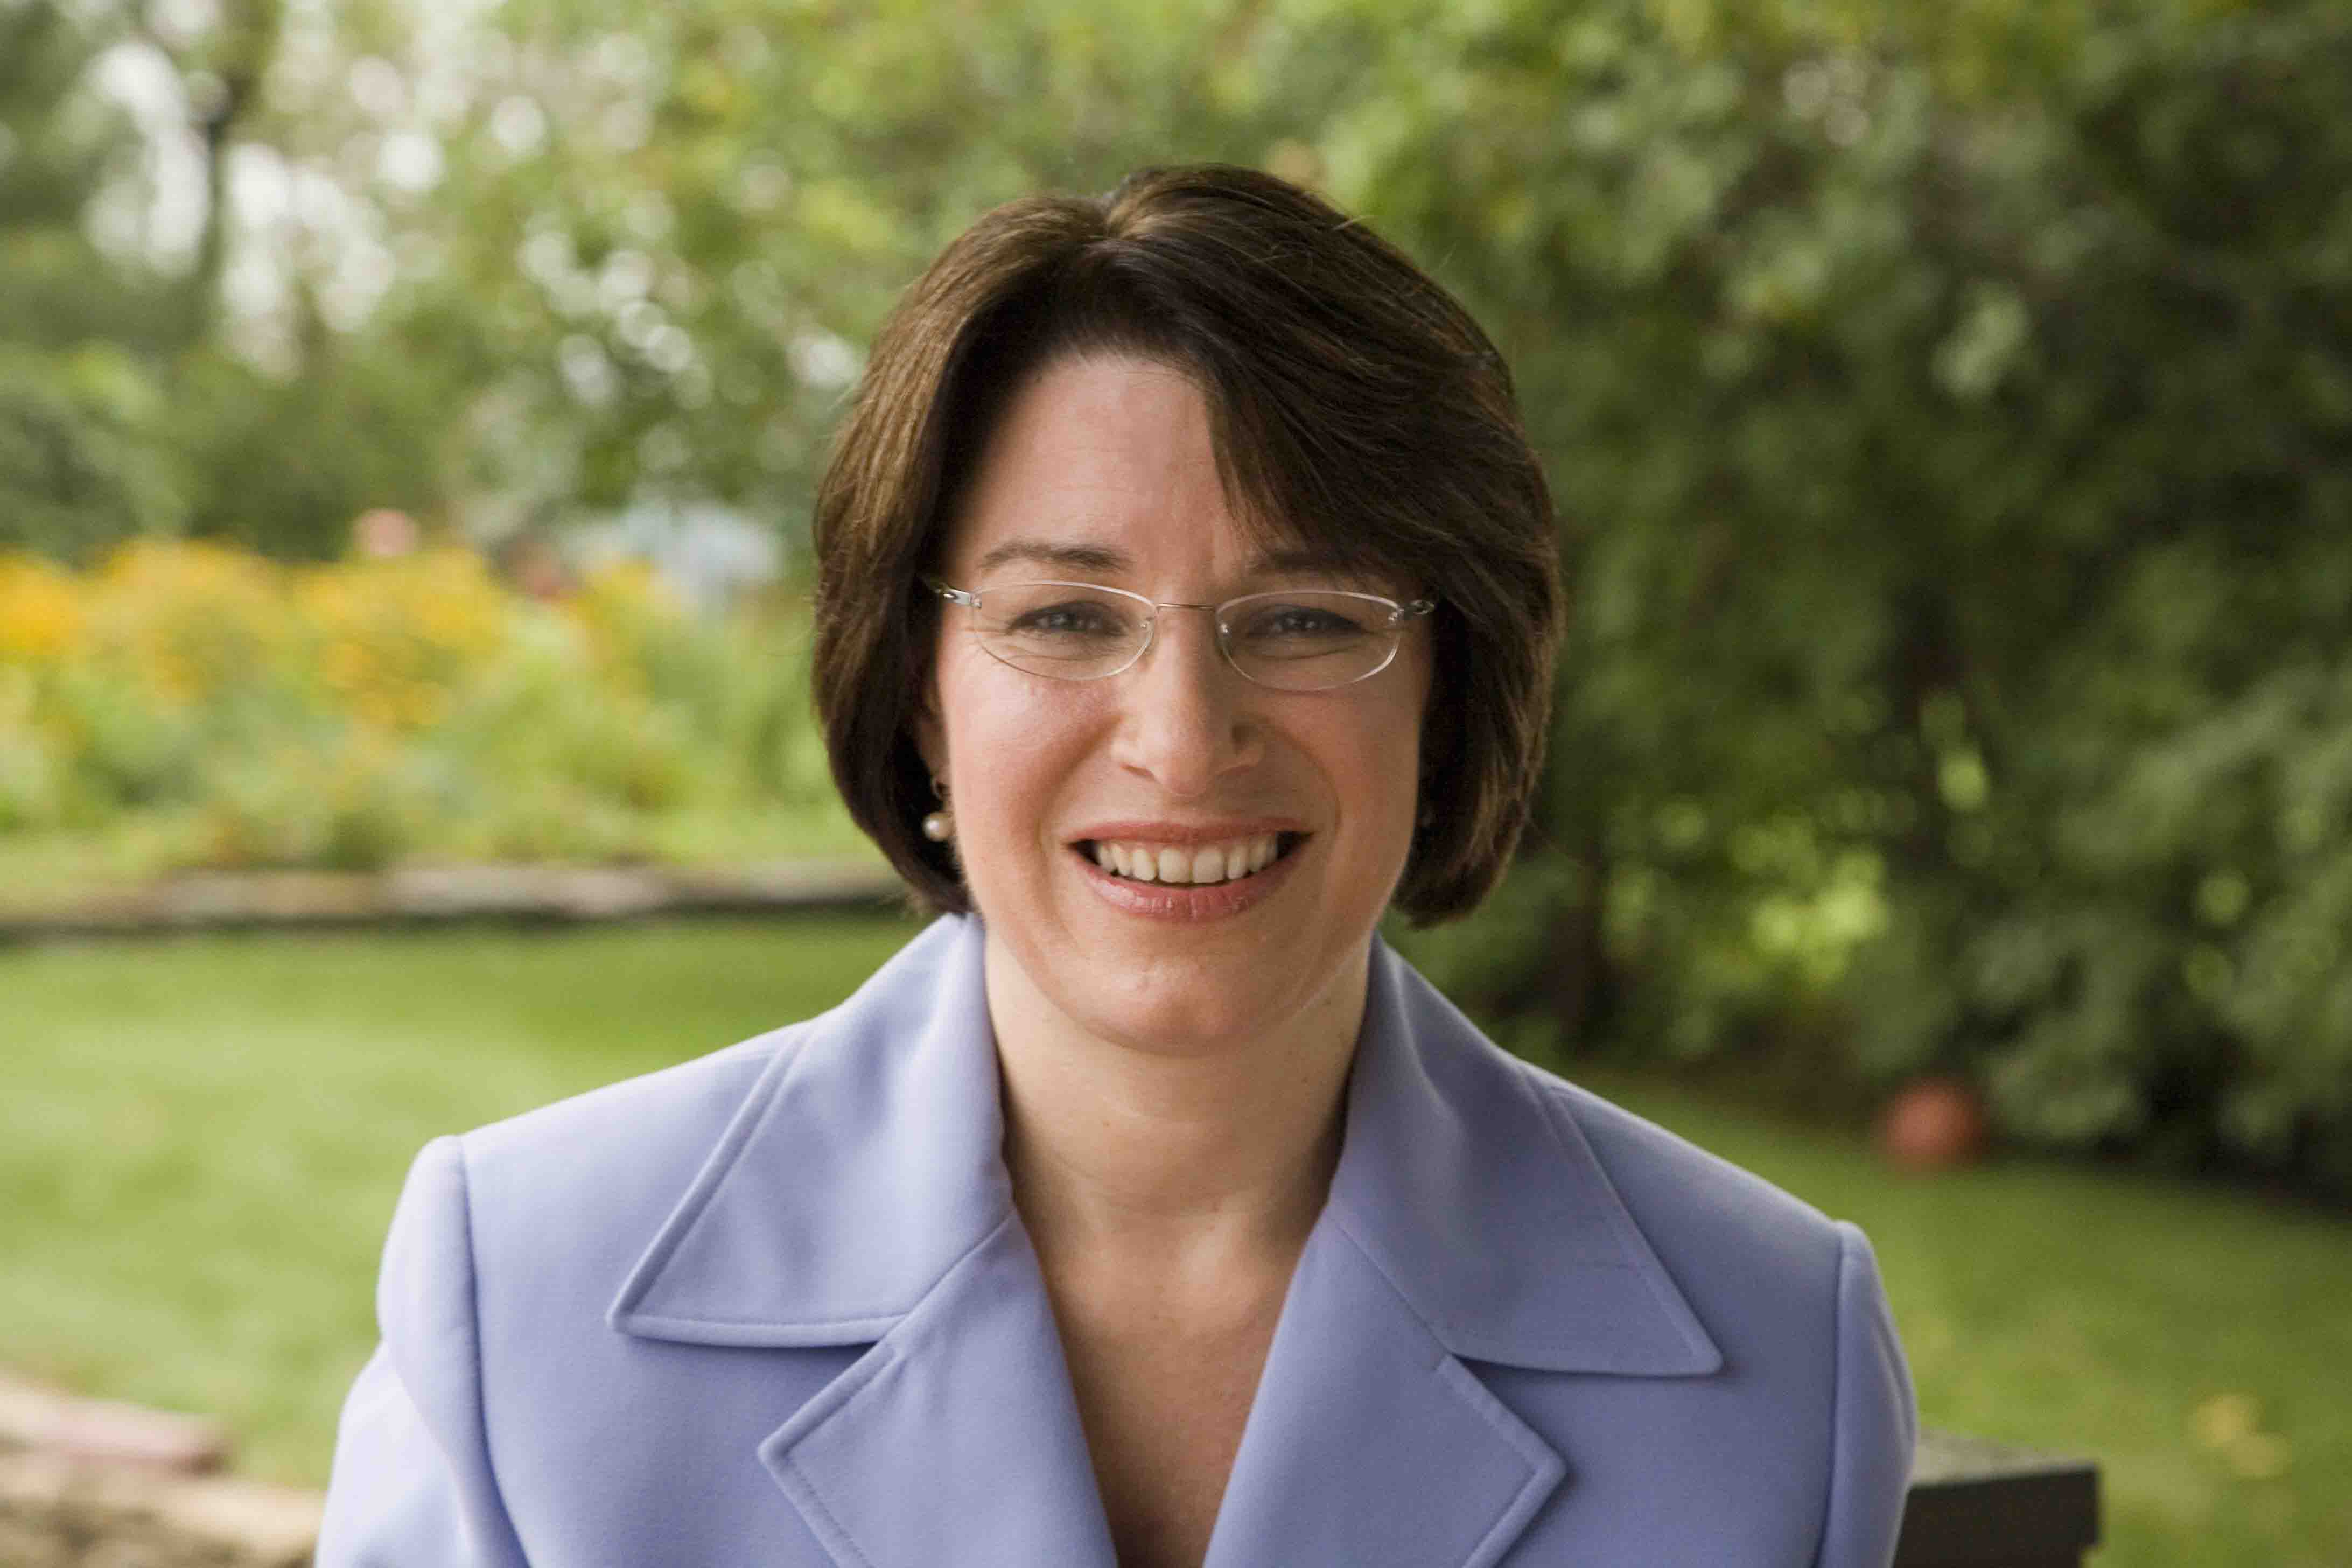 Amy Klobuchar portrait